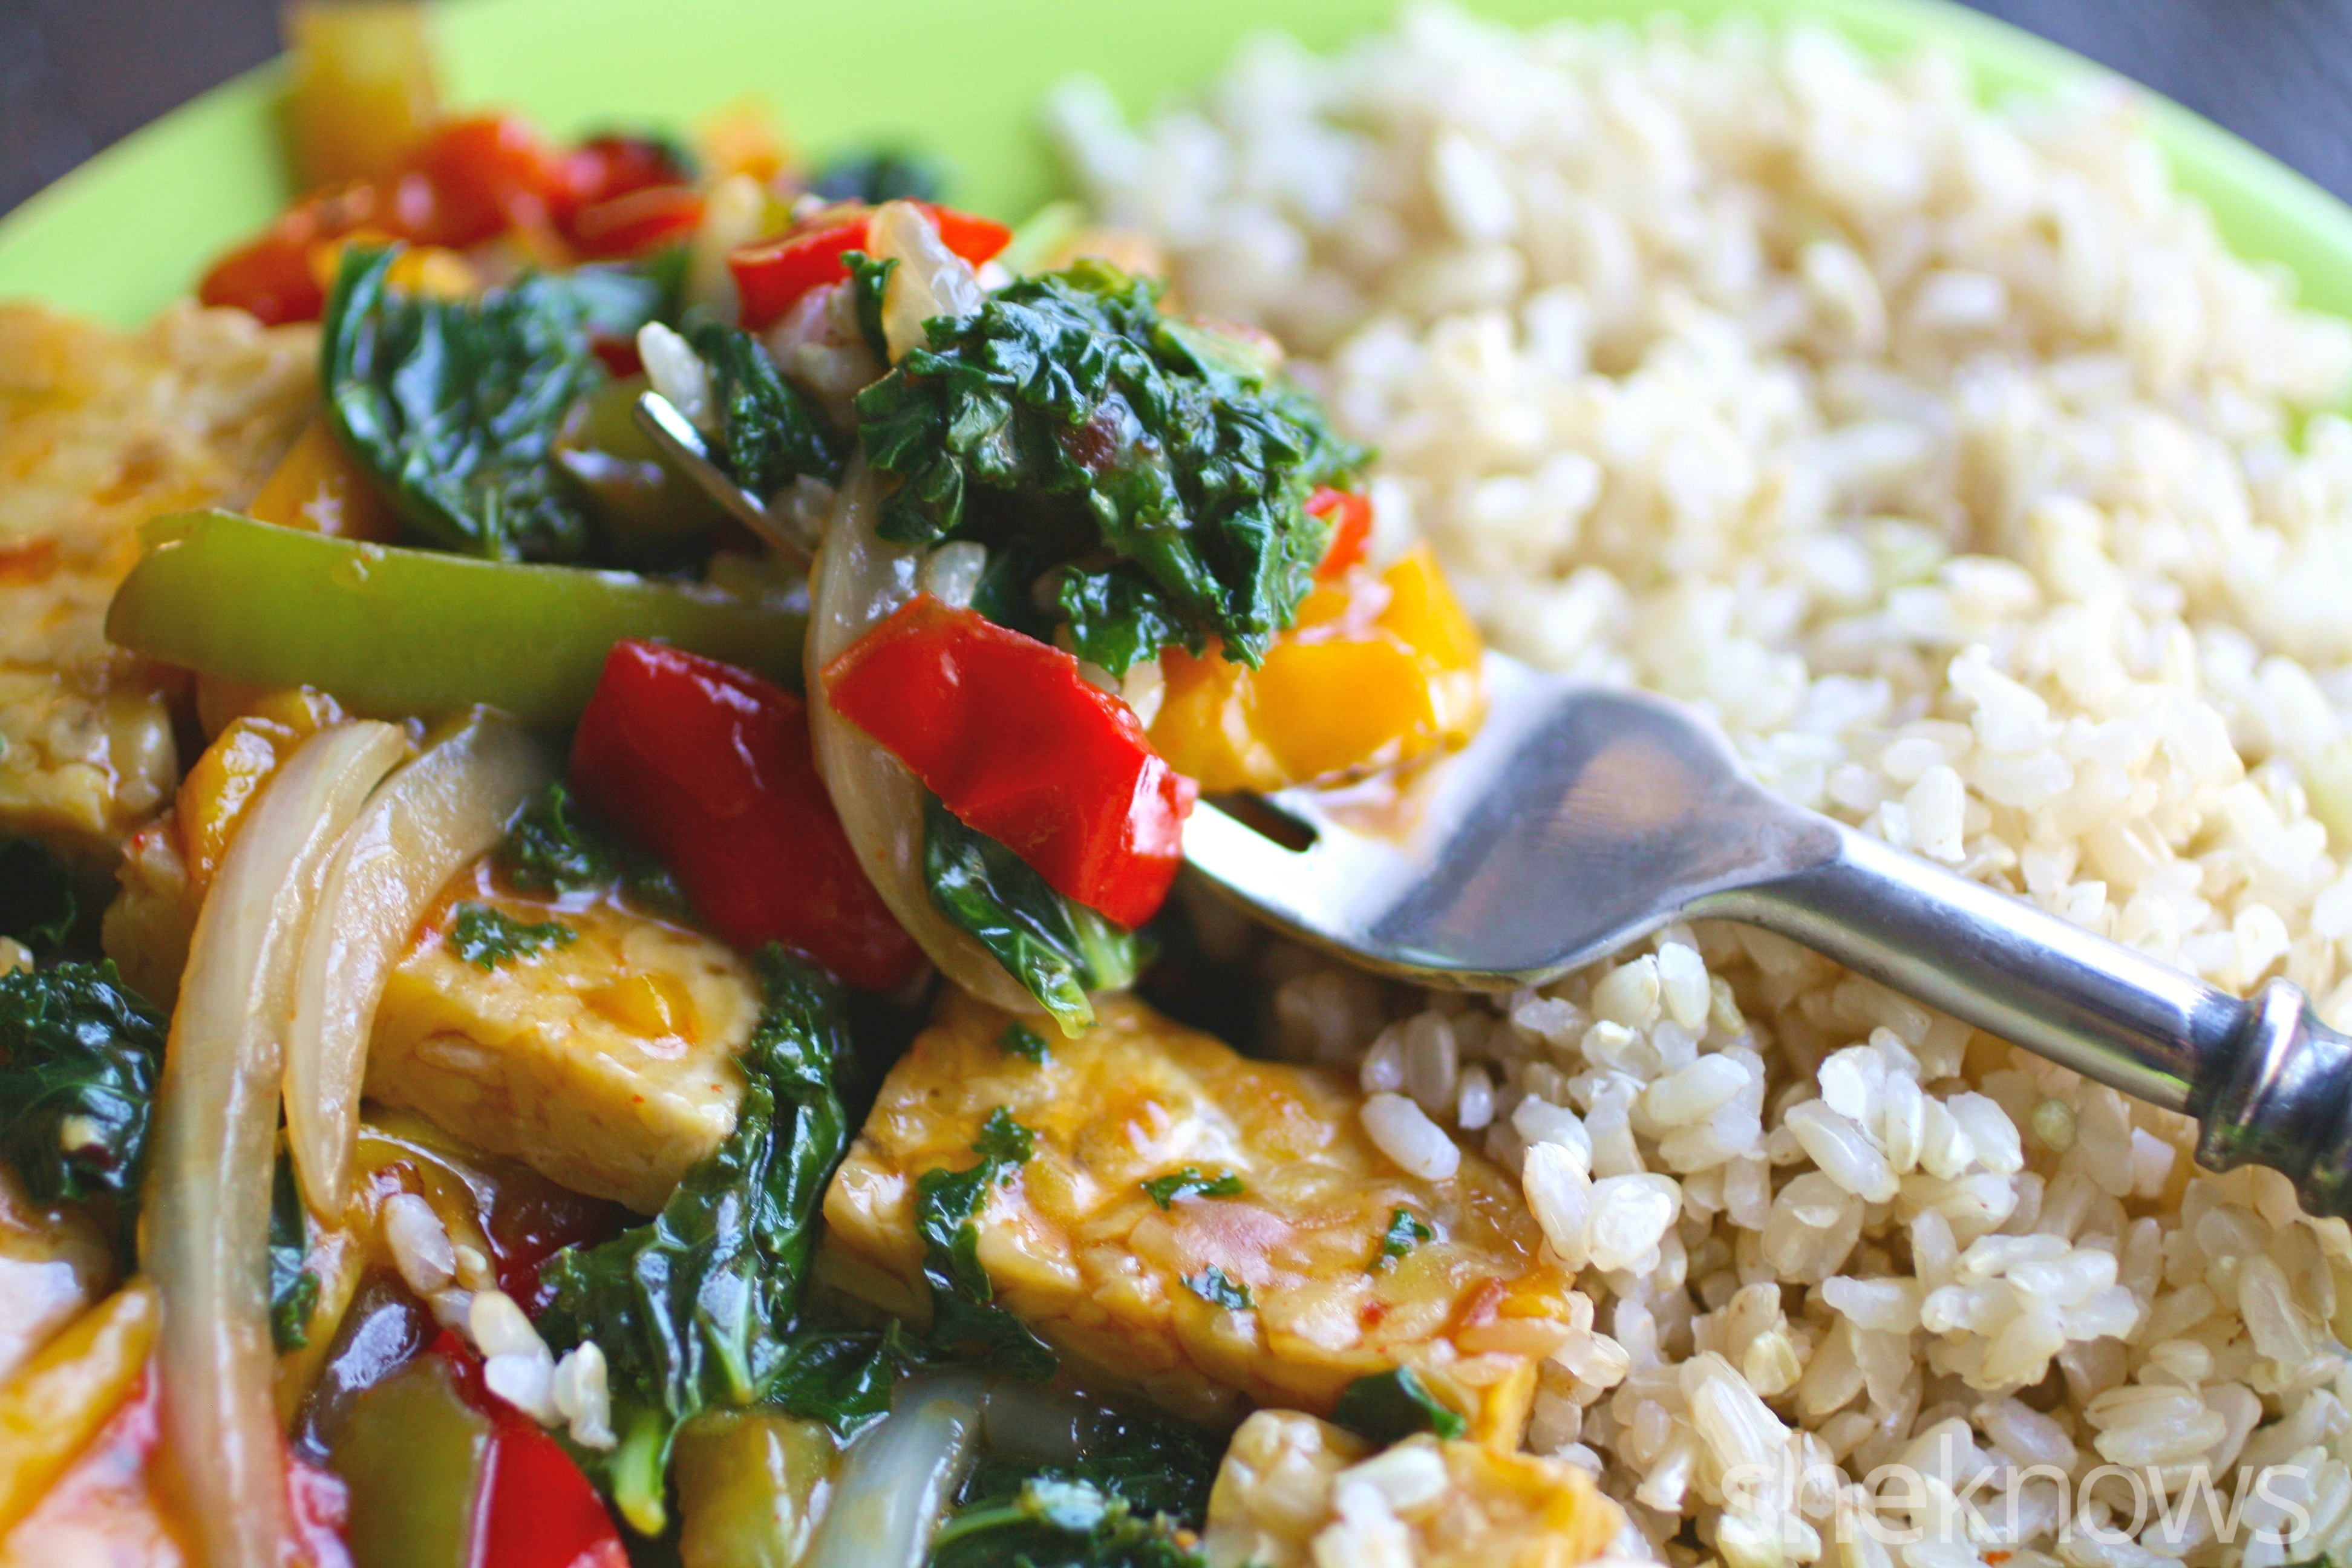 Dig into an easy-to-make and delicious Szecuan stir-fry for your next Meatless Monday meal!